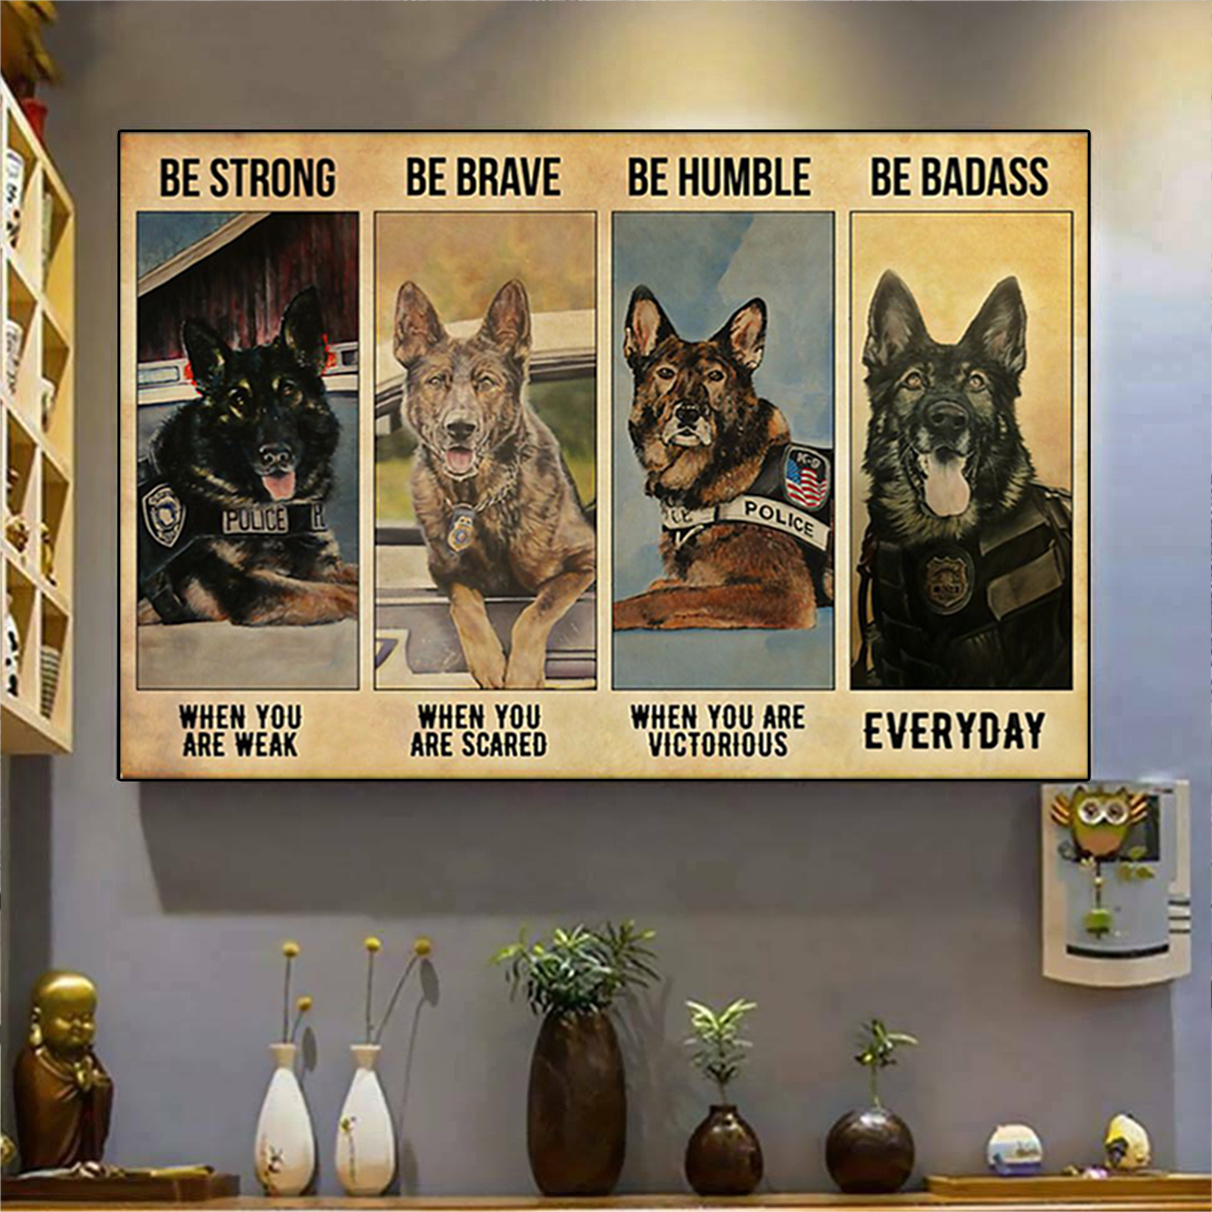 German shepherd police be strong be brave be humble be badass poster A1